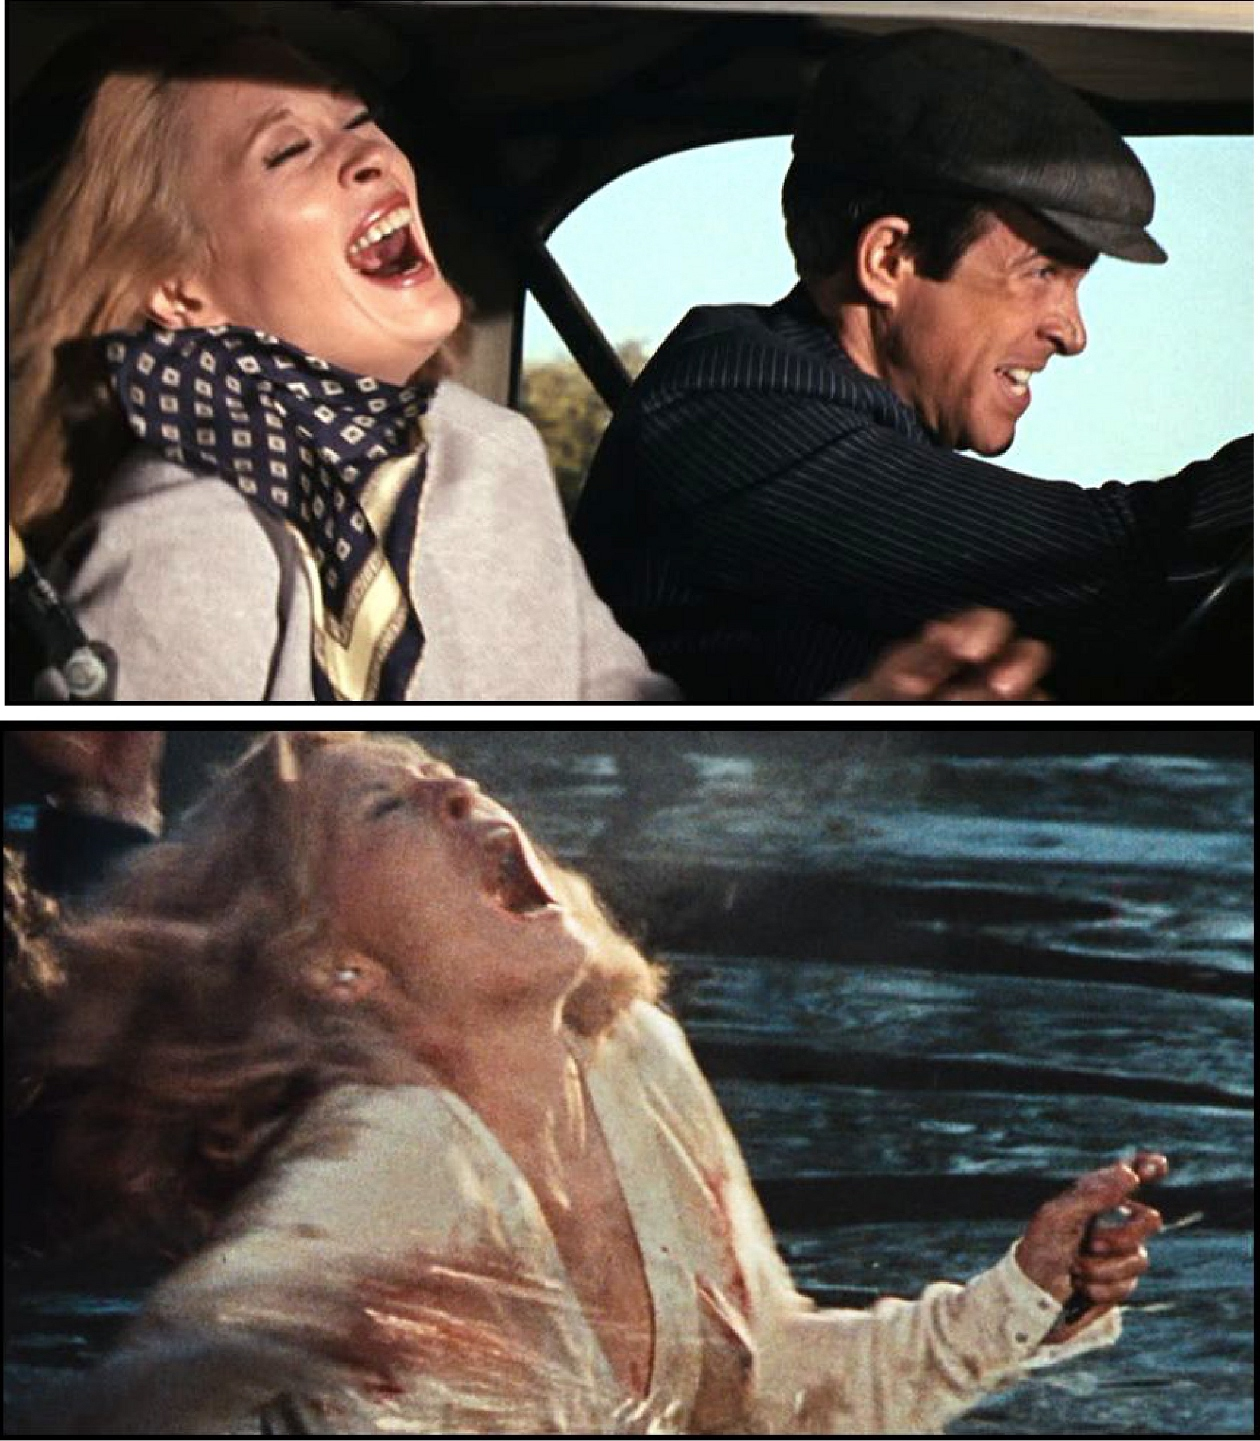 dreams are what le cinema is for bonnie clyde 1967 bonnie clyde laughing and dying the killing gets less impersonal and consequently less funny